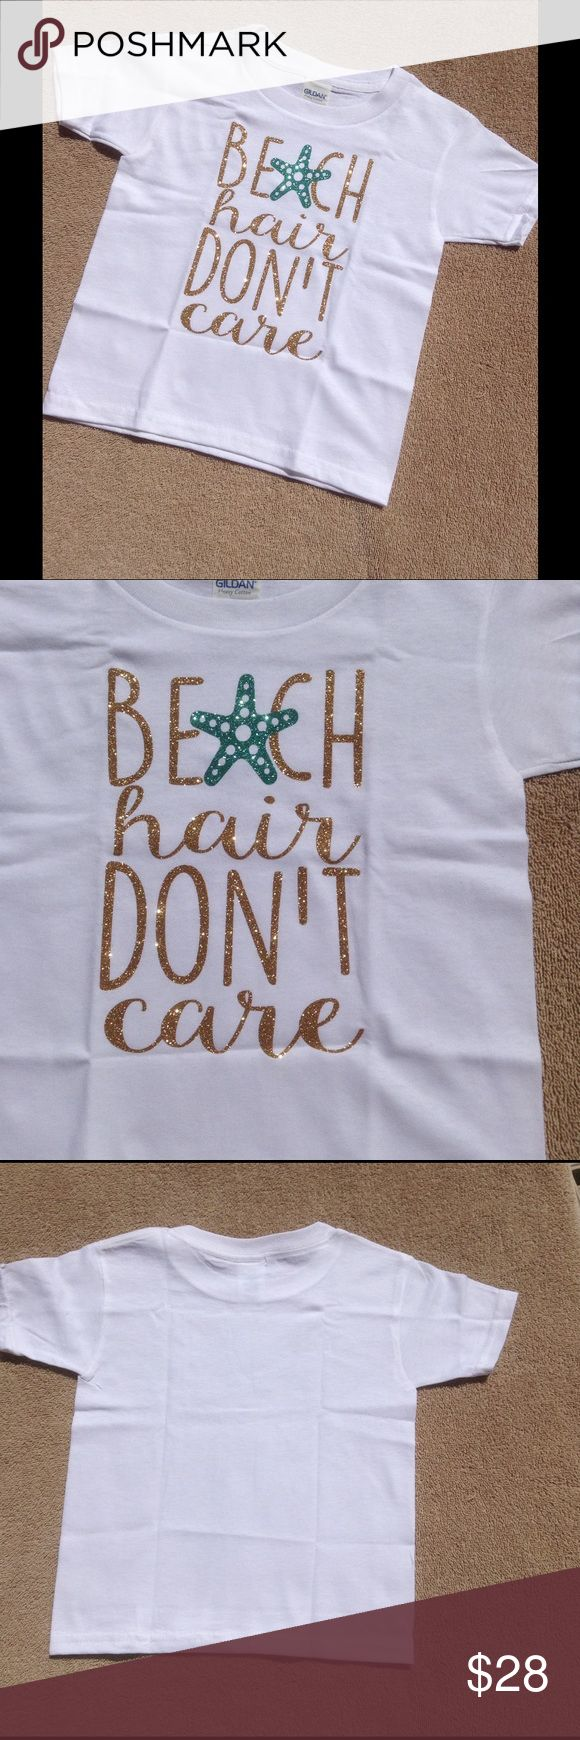 Beach Hair, Don't Care Kids Tee This adorable tee features a gold glittery appliqué with a teal green starfish. Perfect for your little beach goer. 100% soft cotton. Gildan brand. Since this is retail, it has no tags. Made exclusive for Sandystarfish. Sandystarfish Shirts & Tops Tees - Short Sleeve